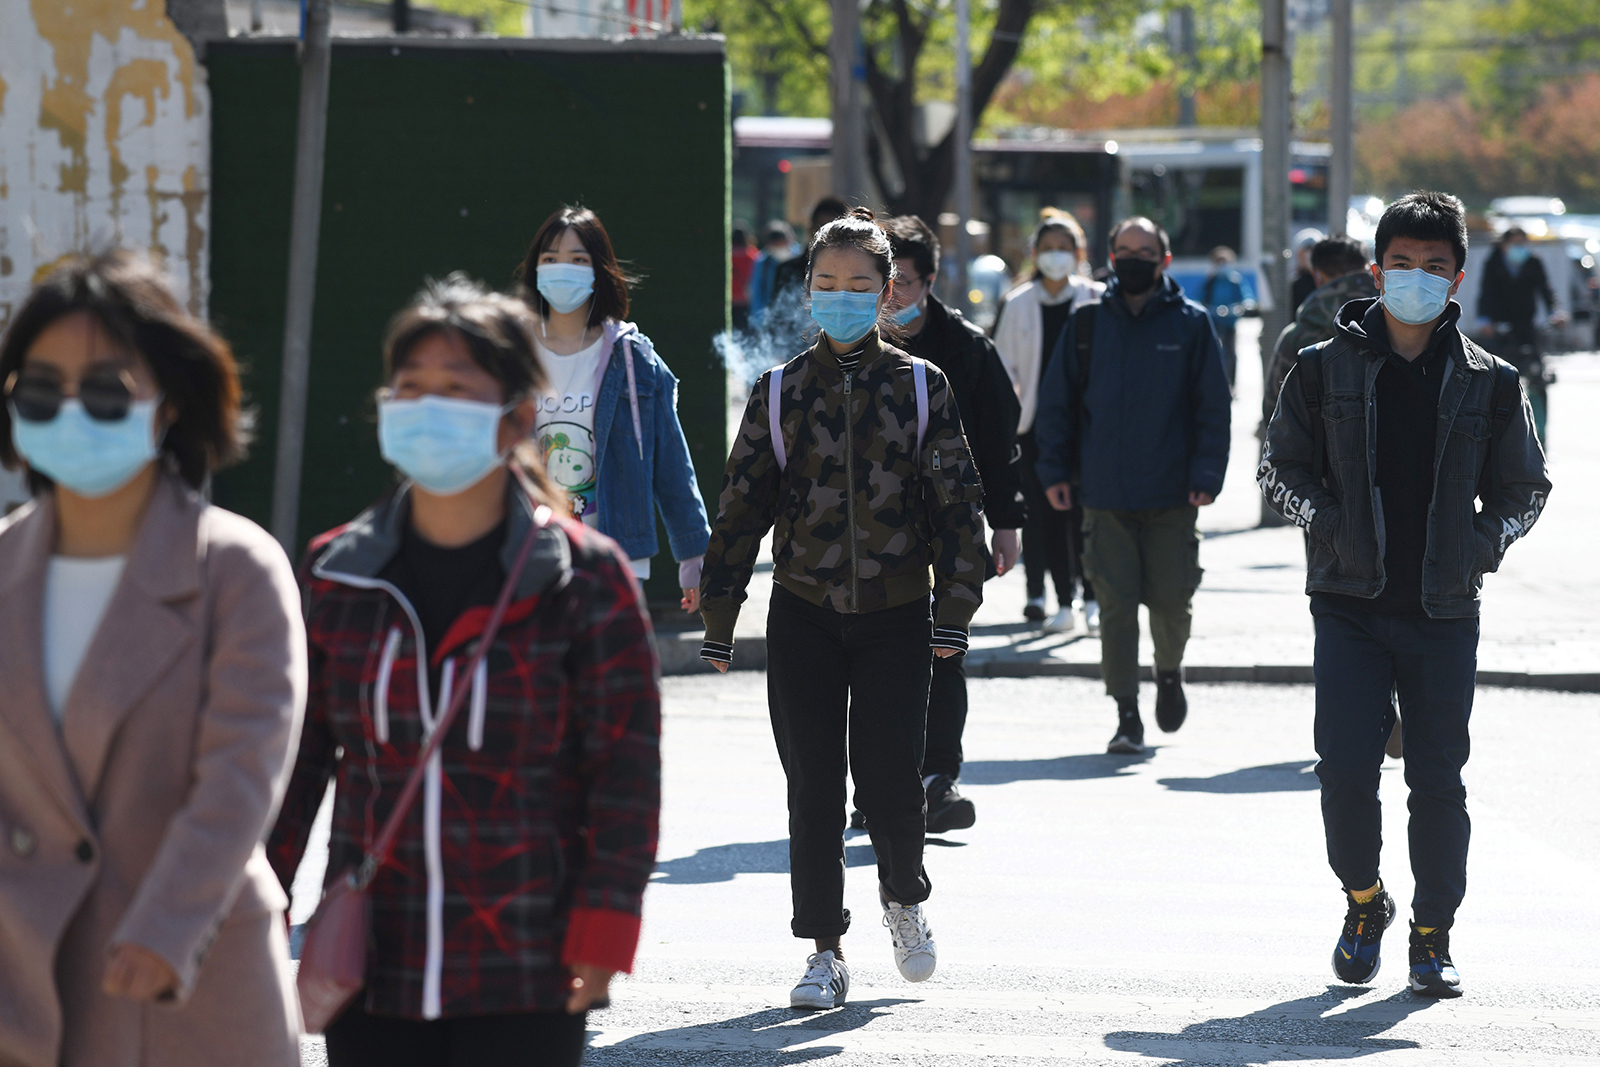 People wear face masks amid concerns of the coronavirus as they walk to a subway station in Beijing on April 23.